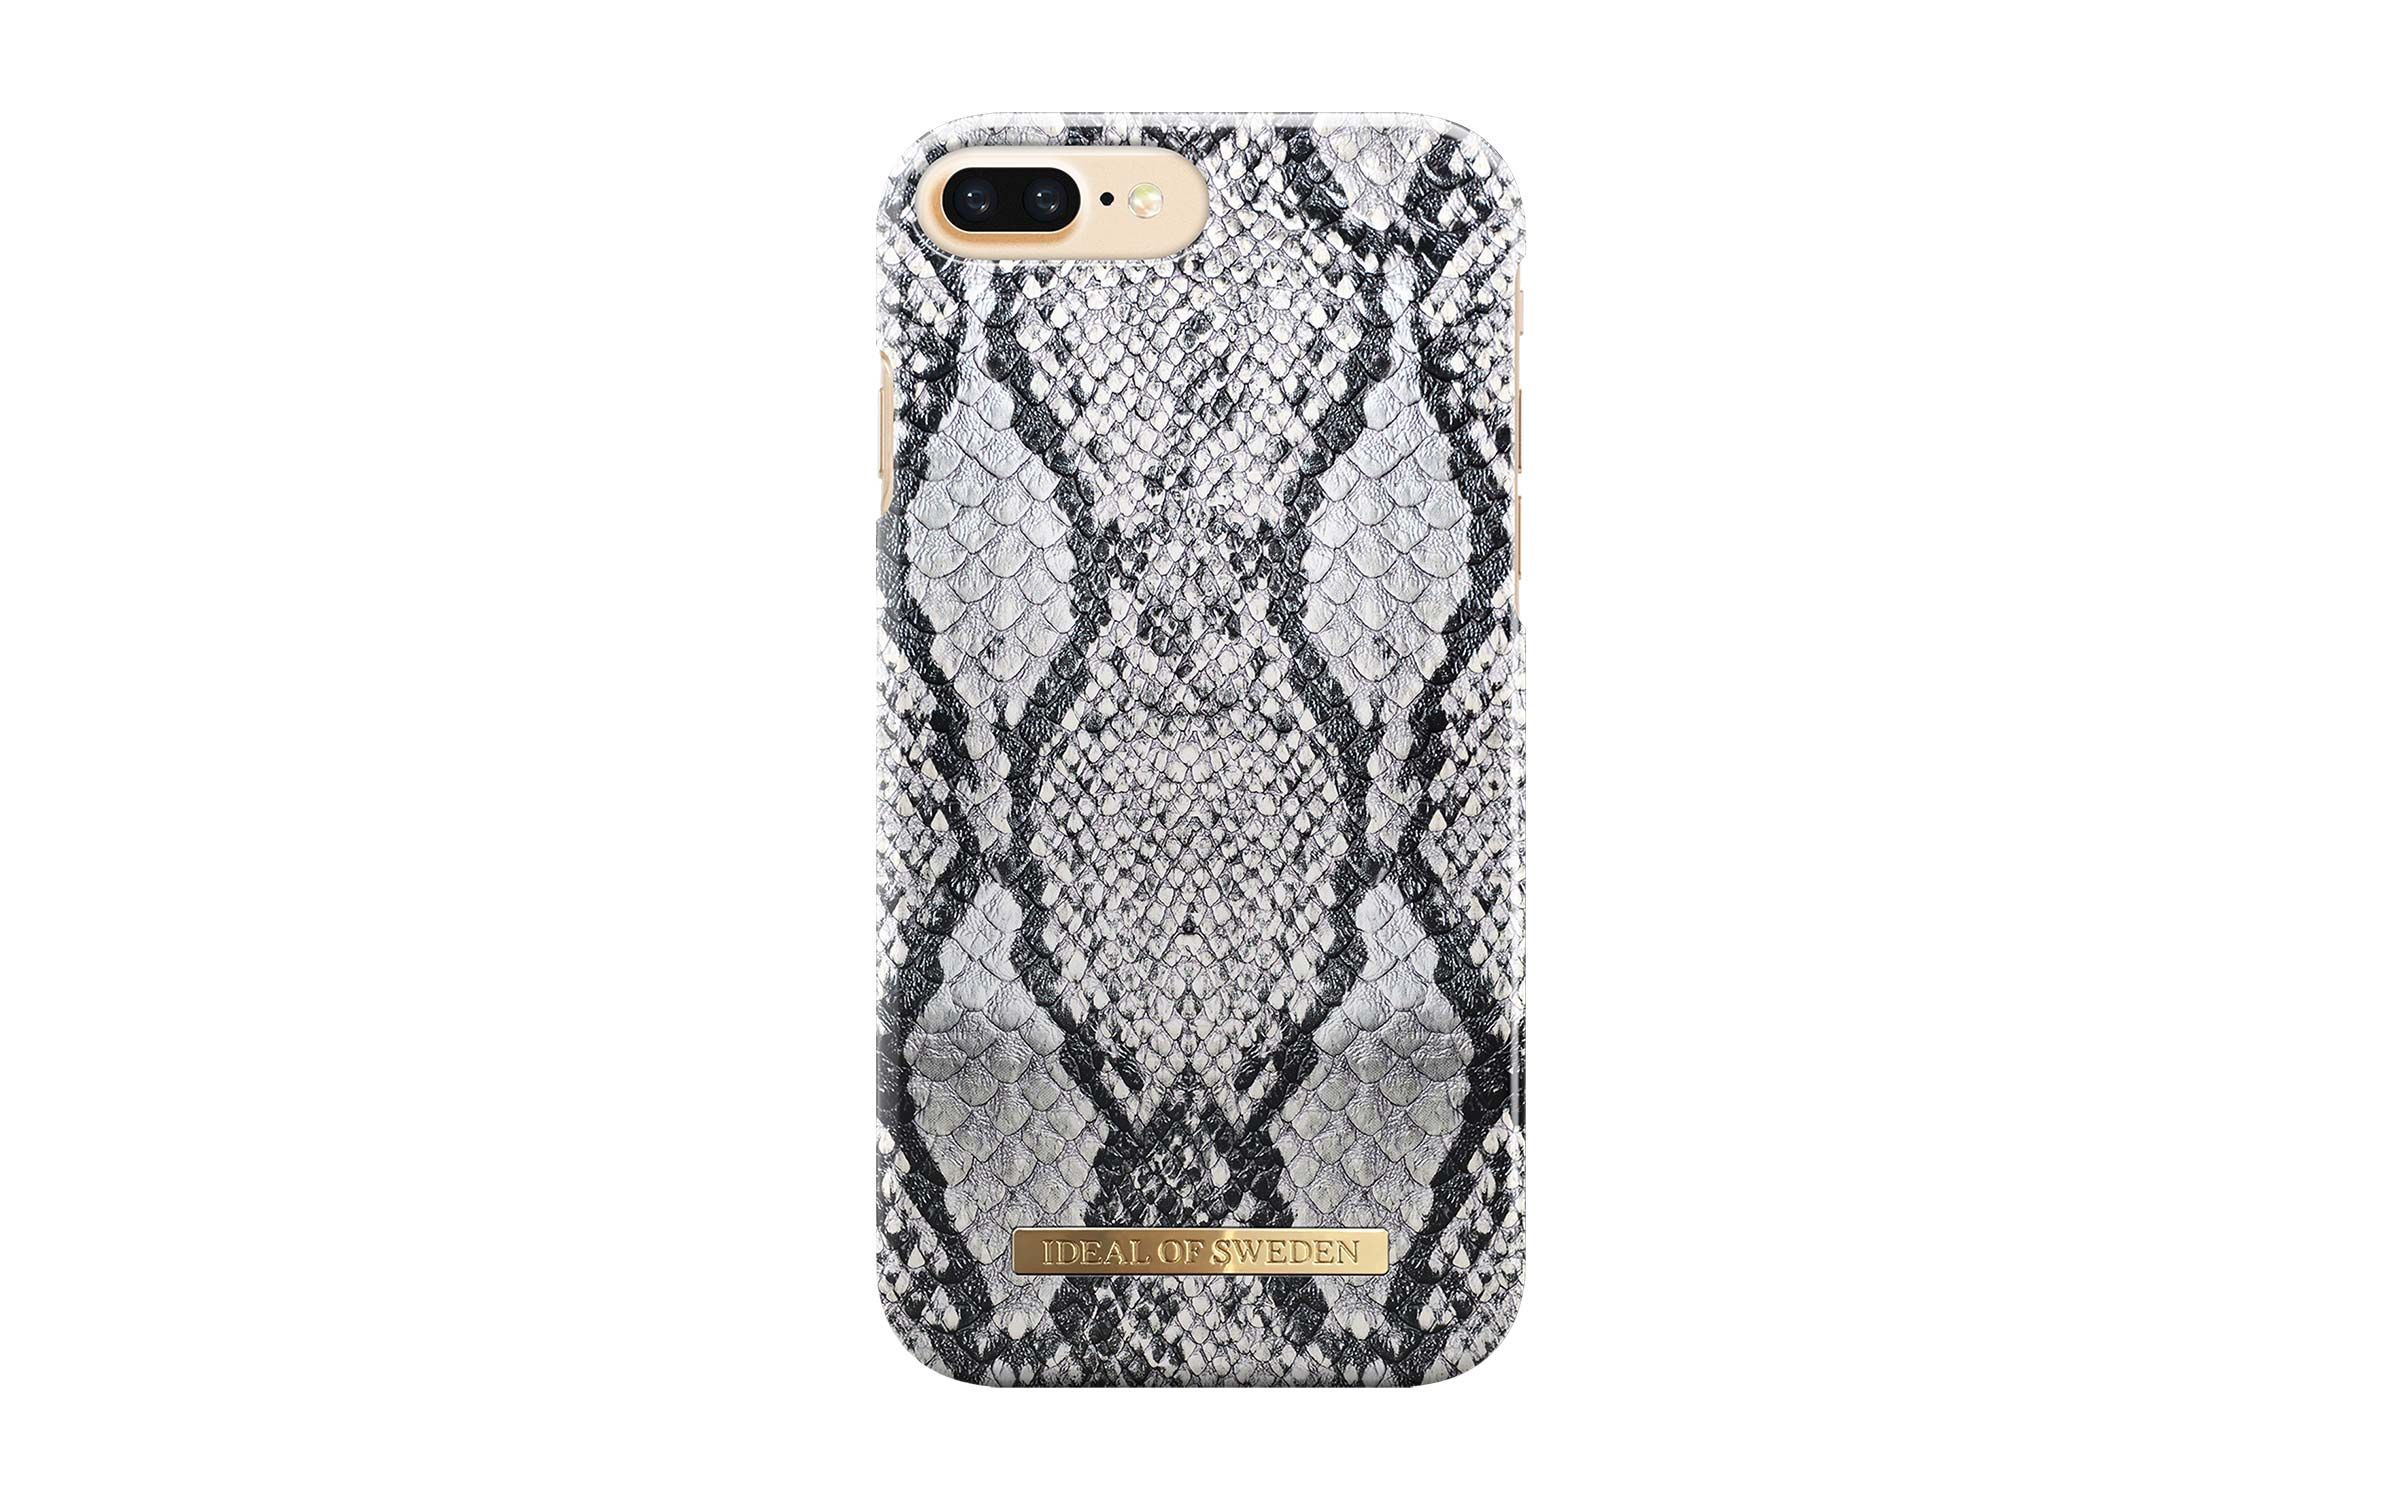 FASHION CASE A/W16 IPHONE 7 PLUS PYTHON | iDeal Of Sweden